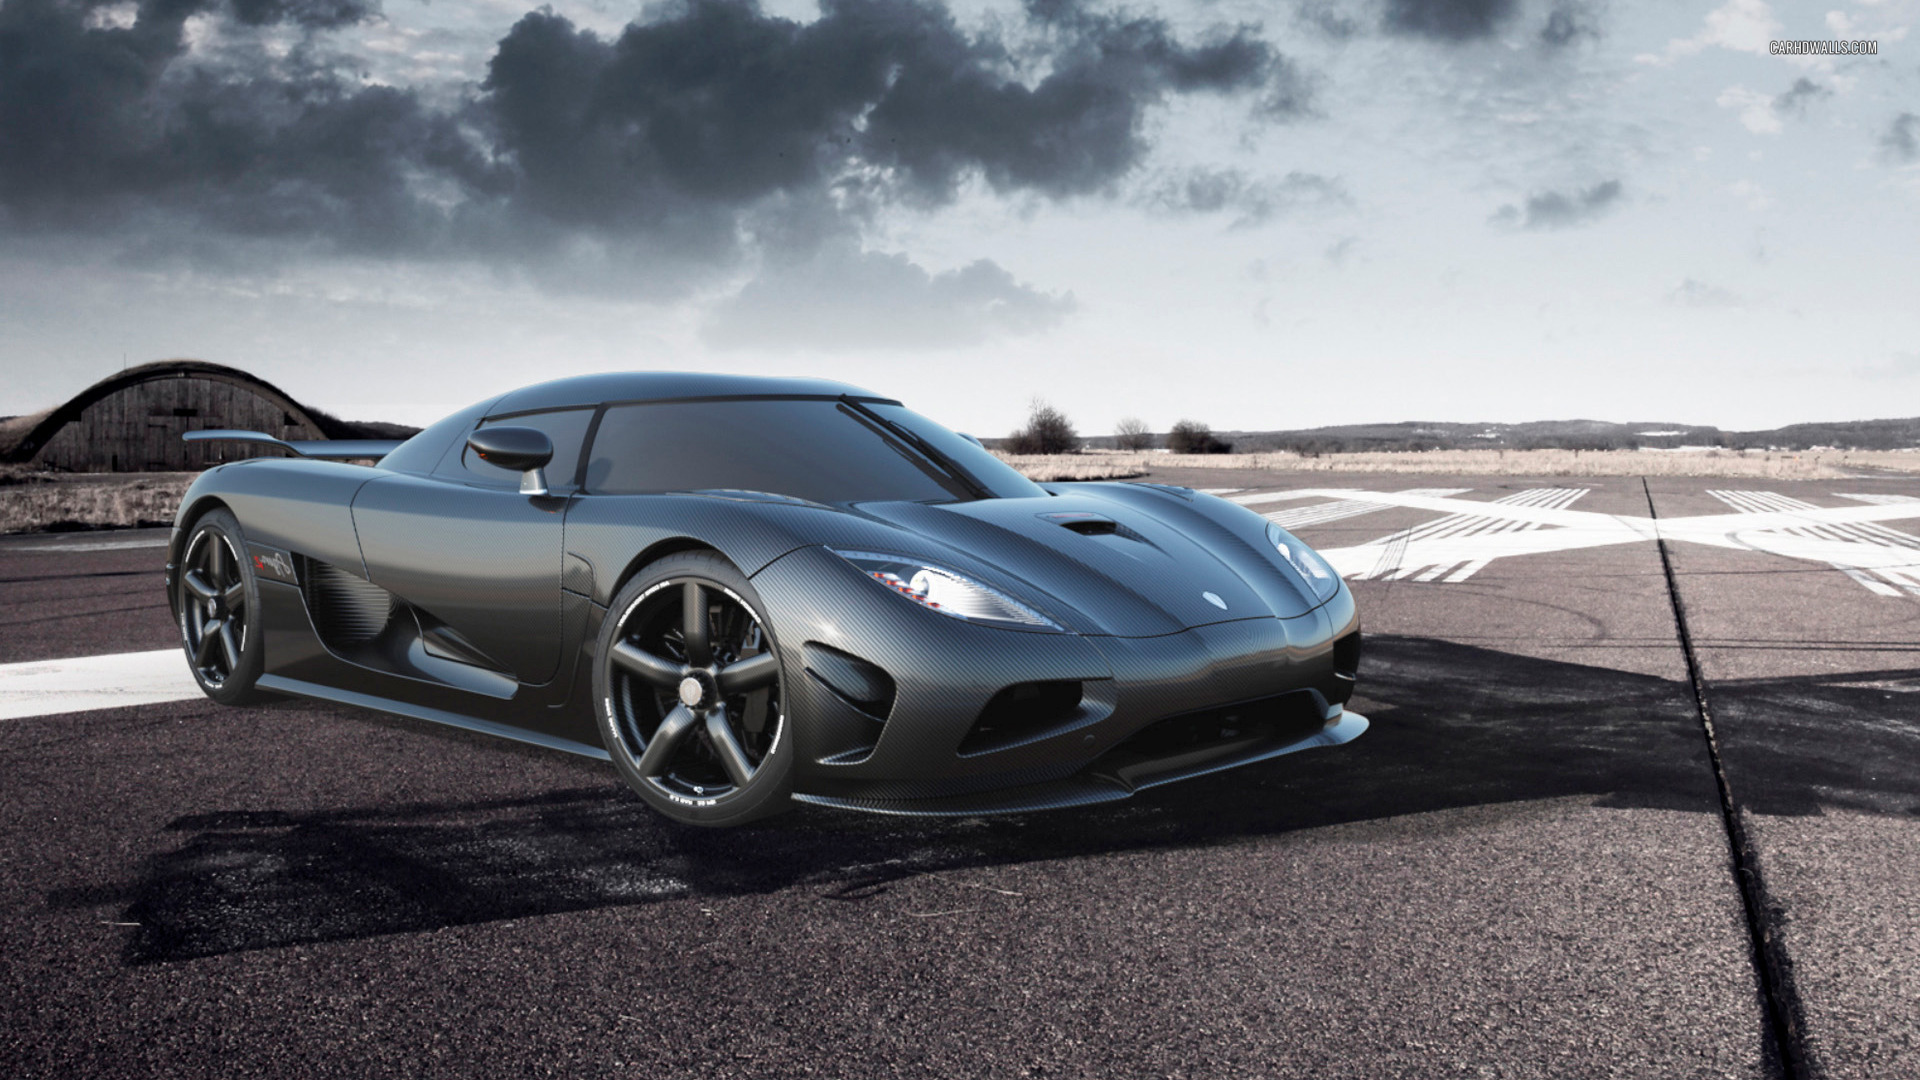 koenigsegg_agera_r_hd_photo